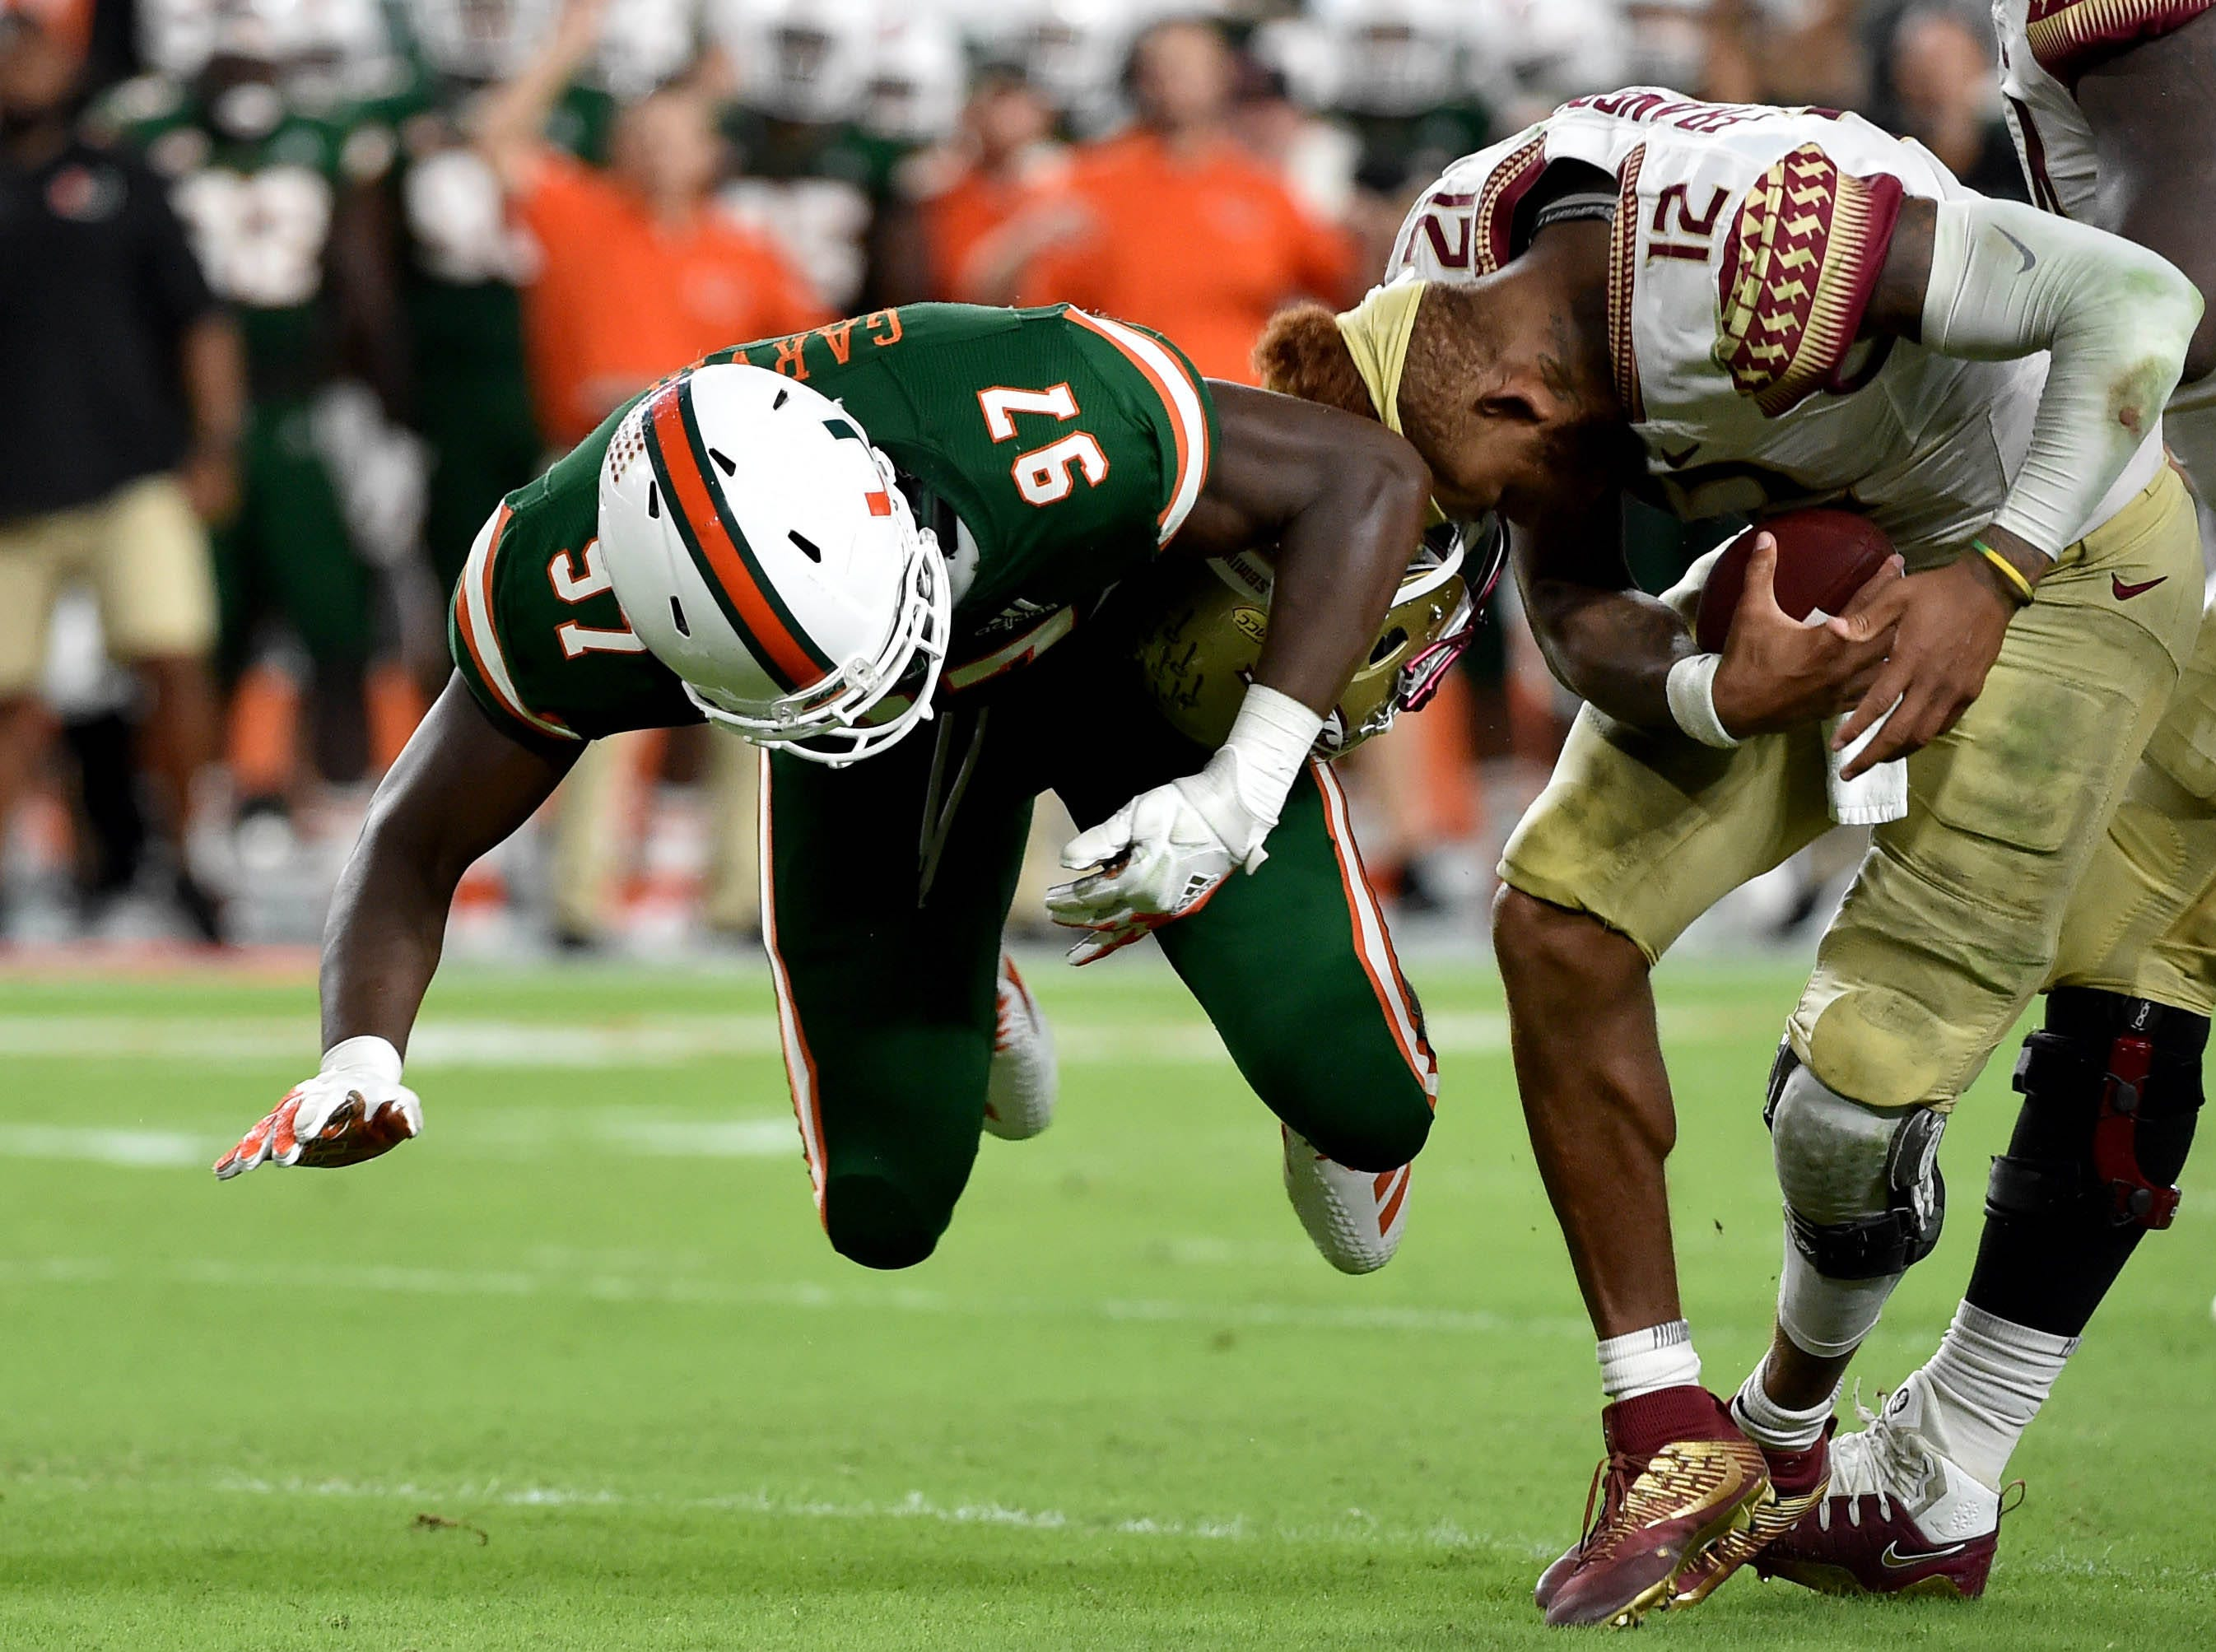 Oct 6, 2018; Miami Gardens, FL, USA; Miami Hurricanes defensive lineman Jonathan Garvin (97) takes the helmet off of Florida State Seminoles quarterback Deondre Francois (12) during the second half at Hard Rock Stadium. Mandatory Credit: Steve Mitchell-USA TODAY Sports